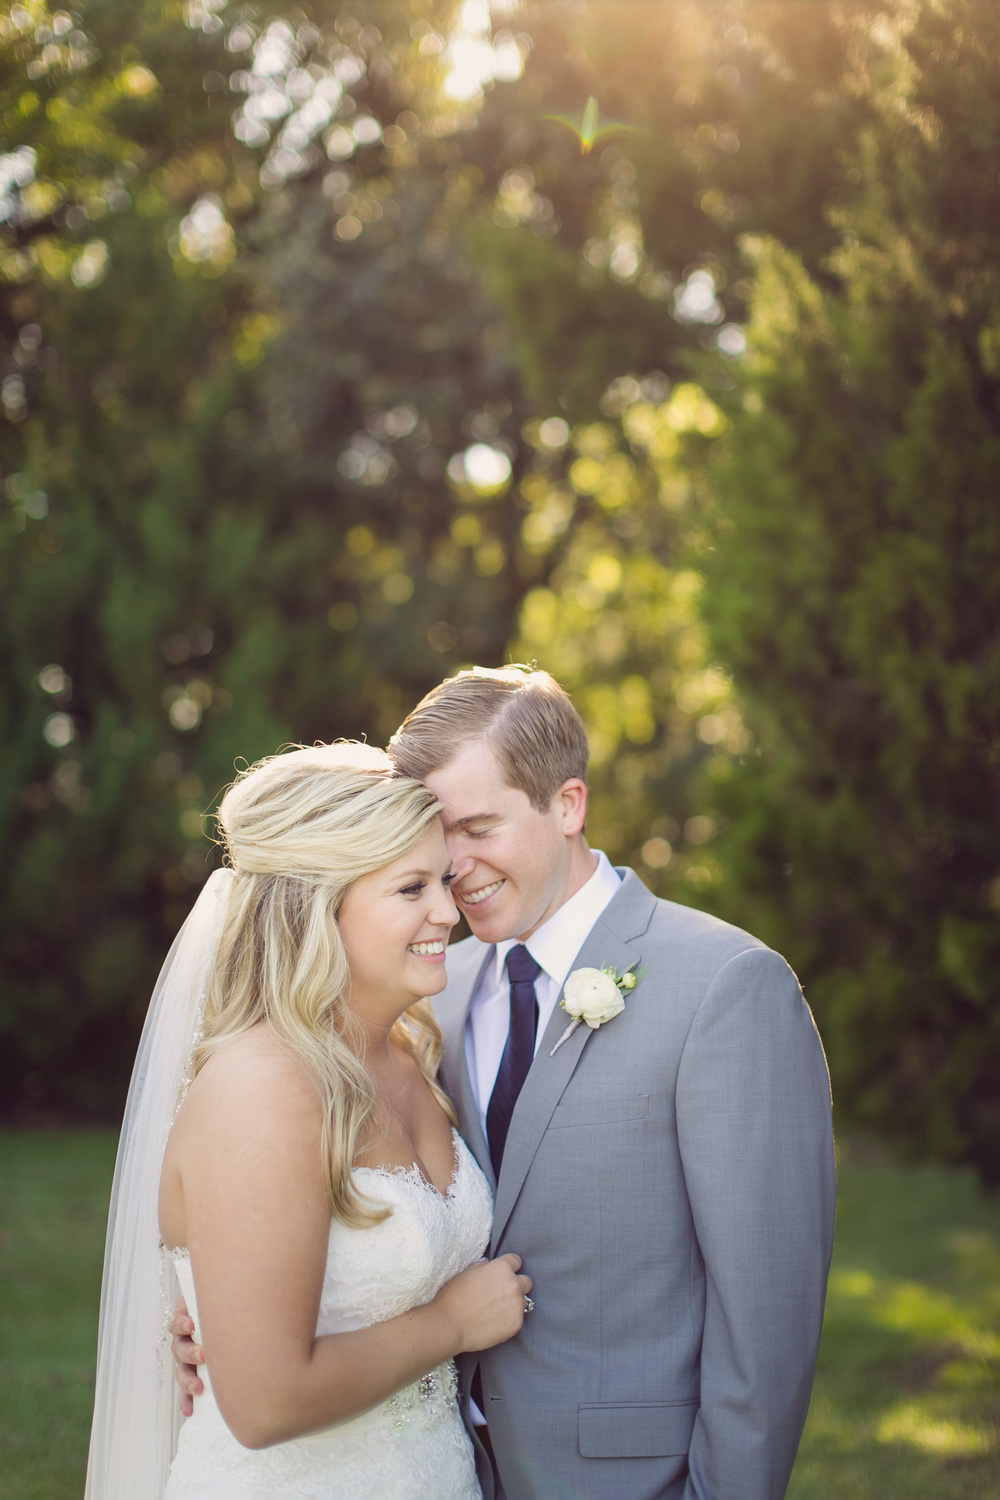 Heather + Andy's Lowcountry wedding in Charleston, South Carolina